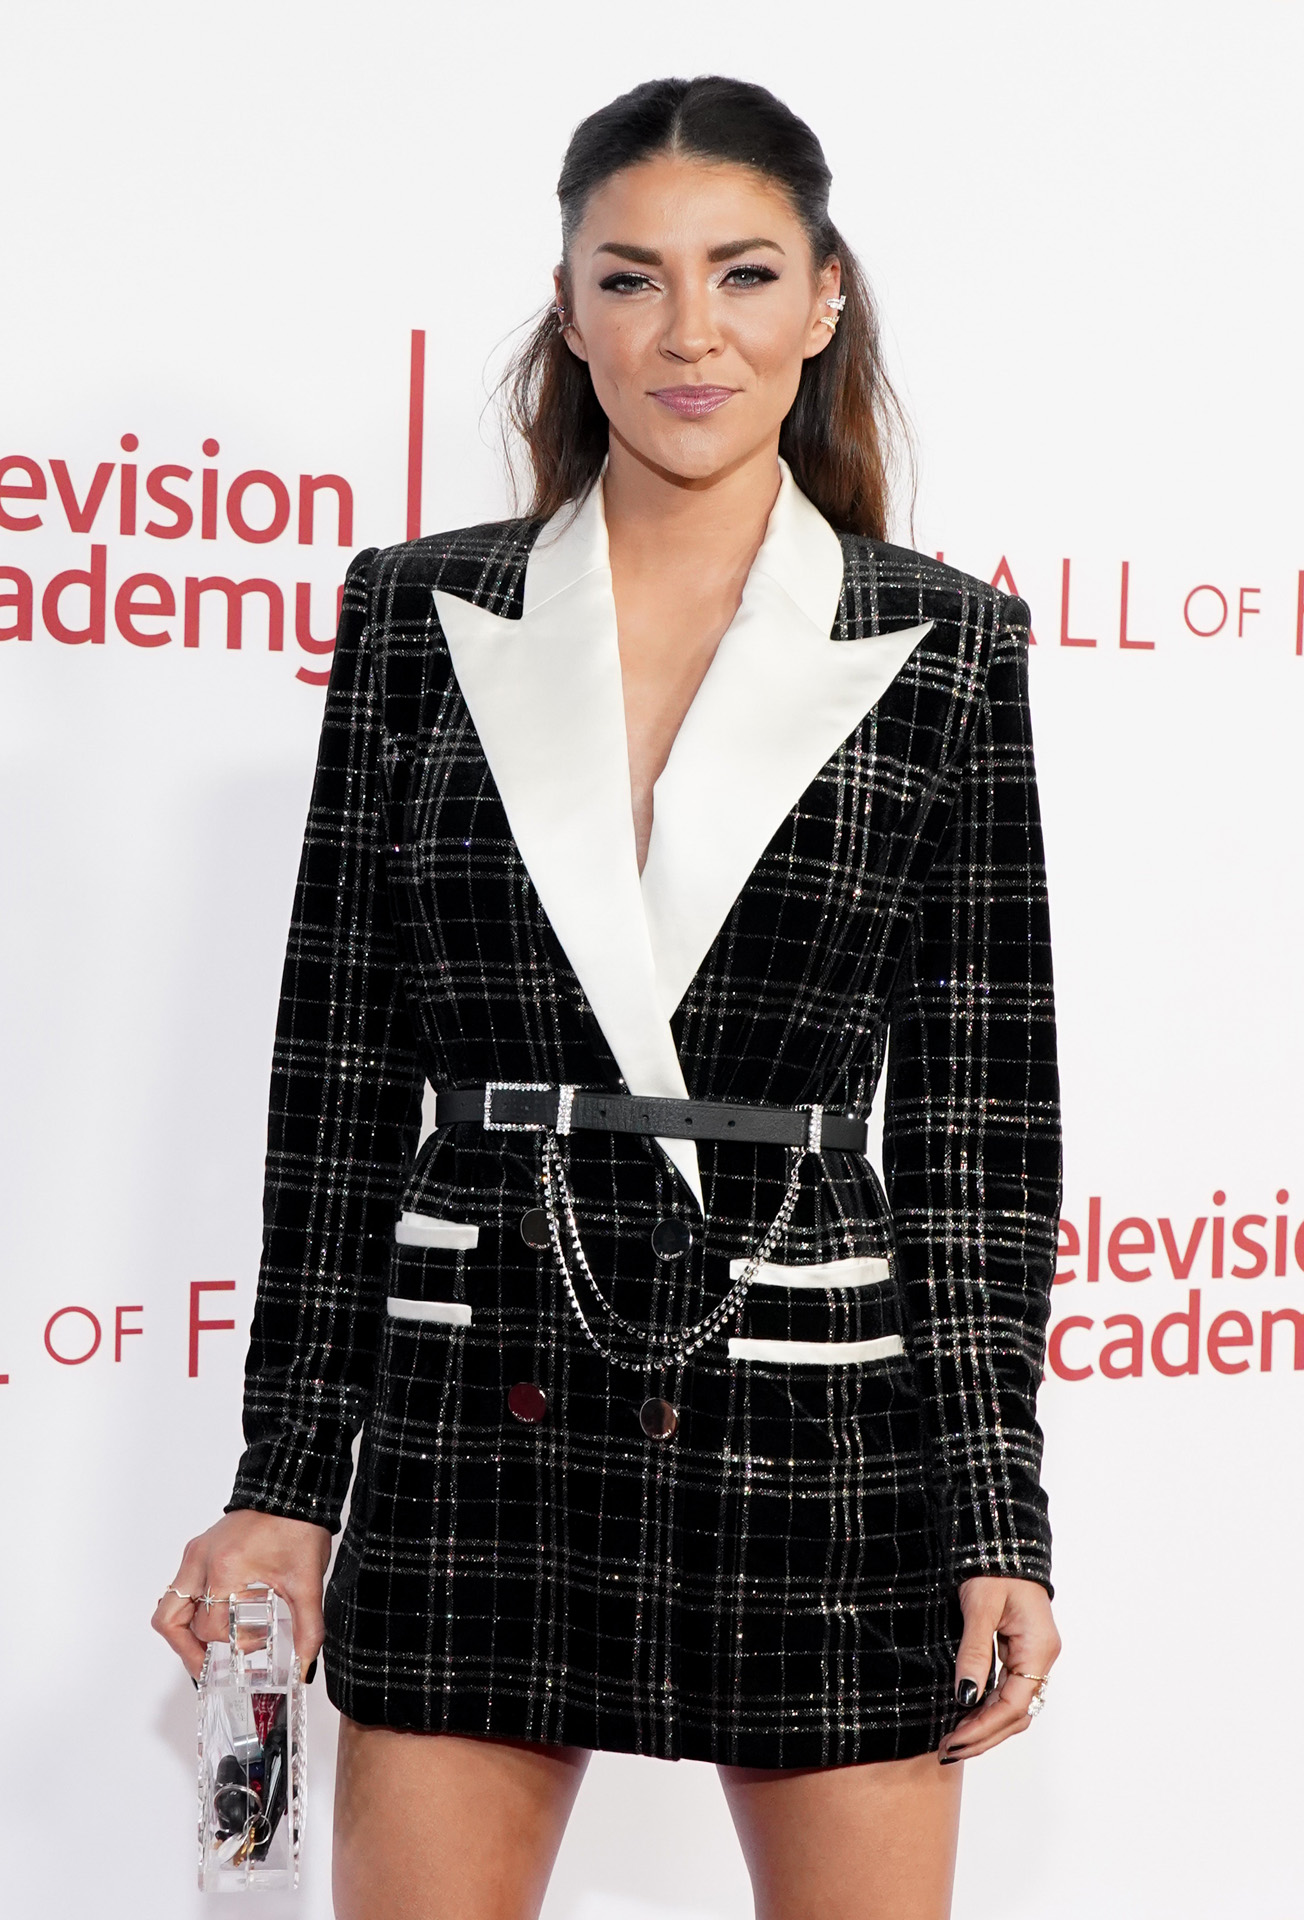 NORTH HOLLYWOOD, CALIFORNIA - JANUARY 28: Jessica Szohr attends the Television Academy's 25th Hall Of Fame Induction Ceremony at Saban Media Center on January 28, 2020 in North Hollywood, California. Rachel Luna/Getty Images/AFP